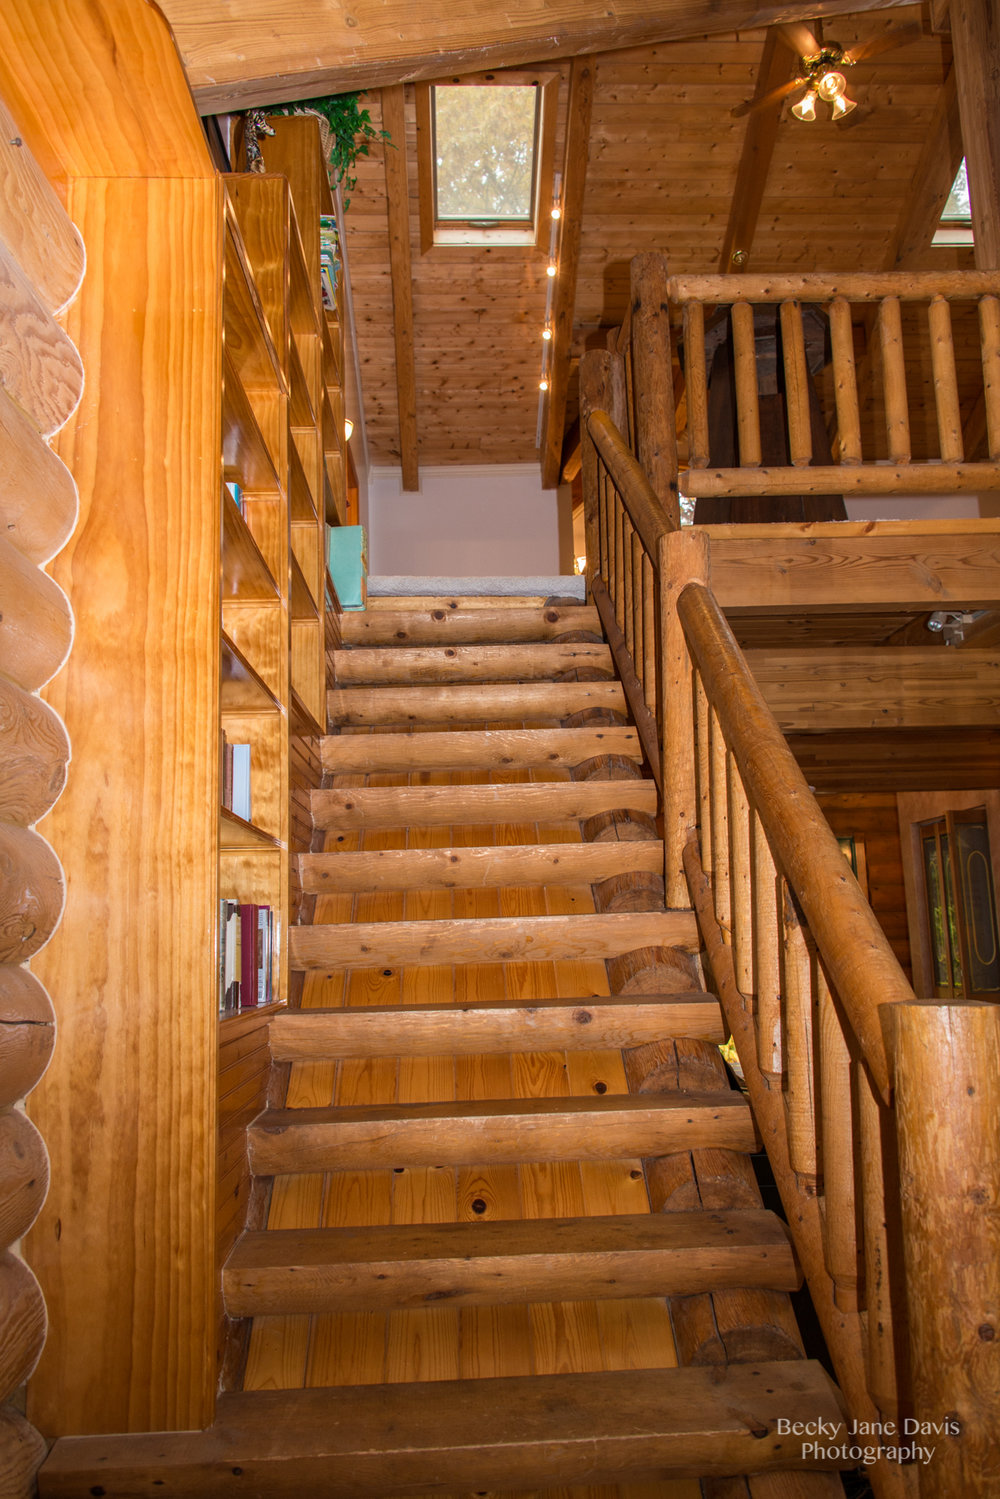 stairs with wall of bookshelves.jpg